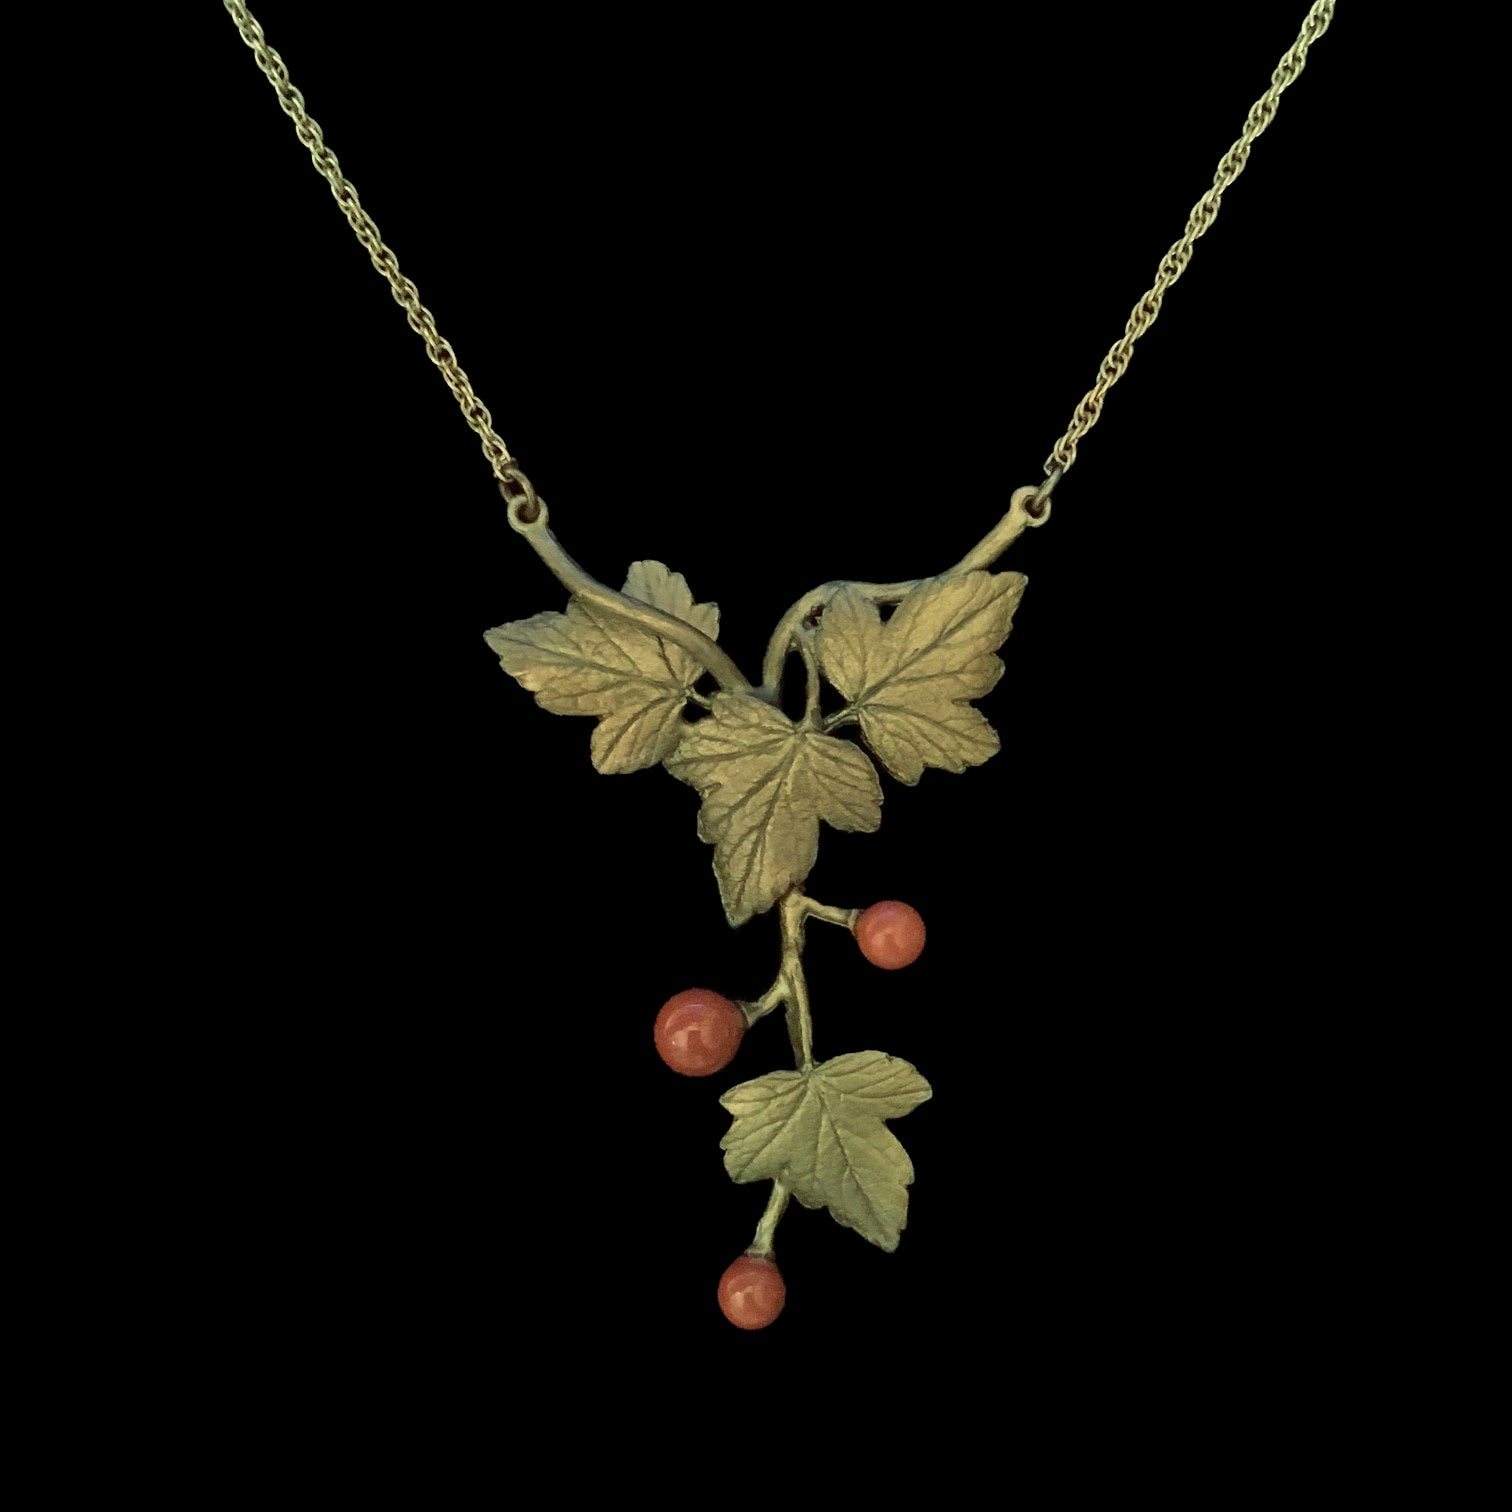 Gooseberry Necklace - Y Drop